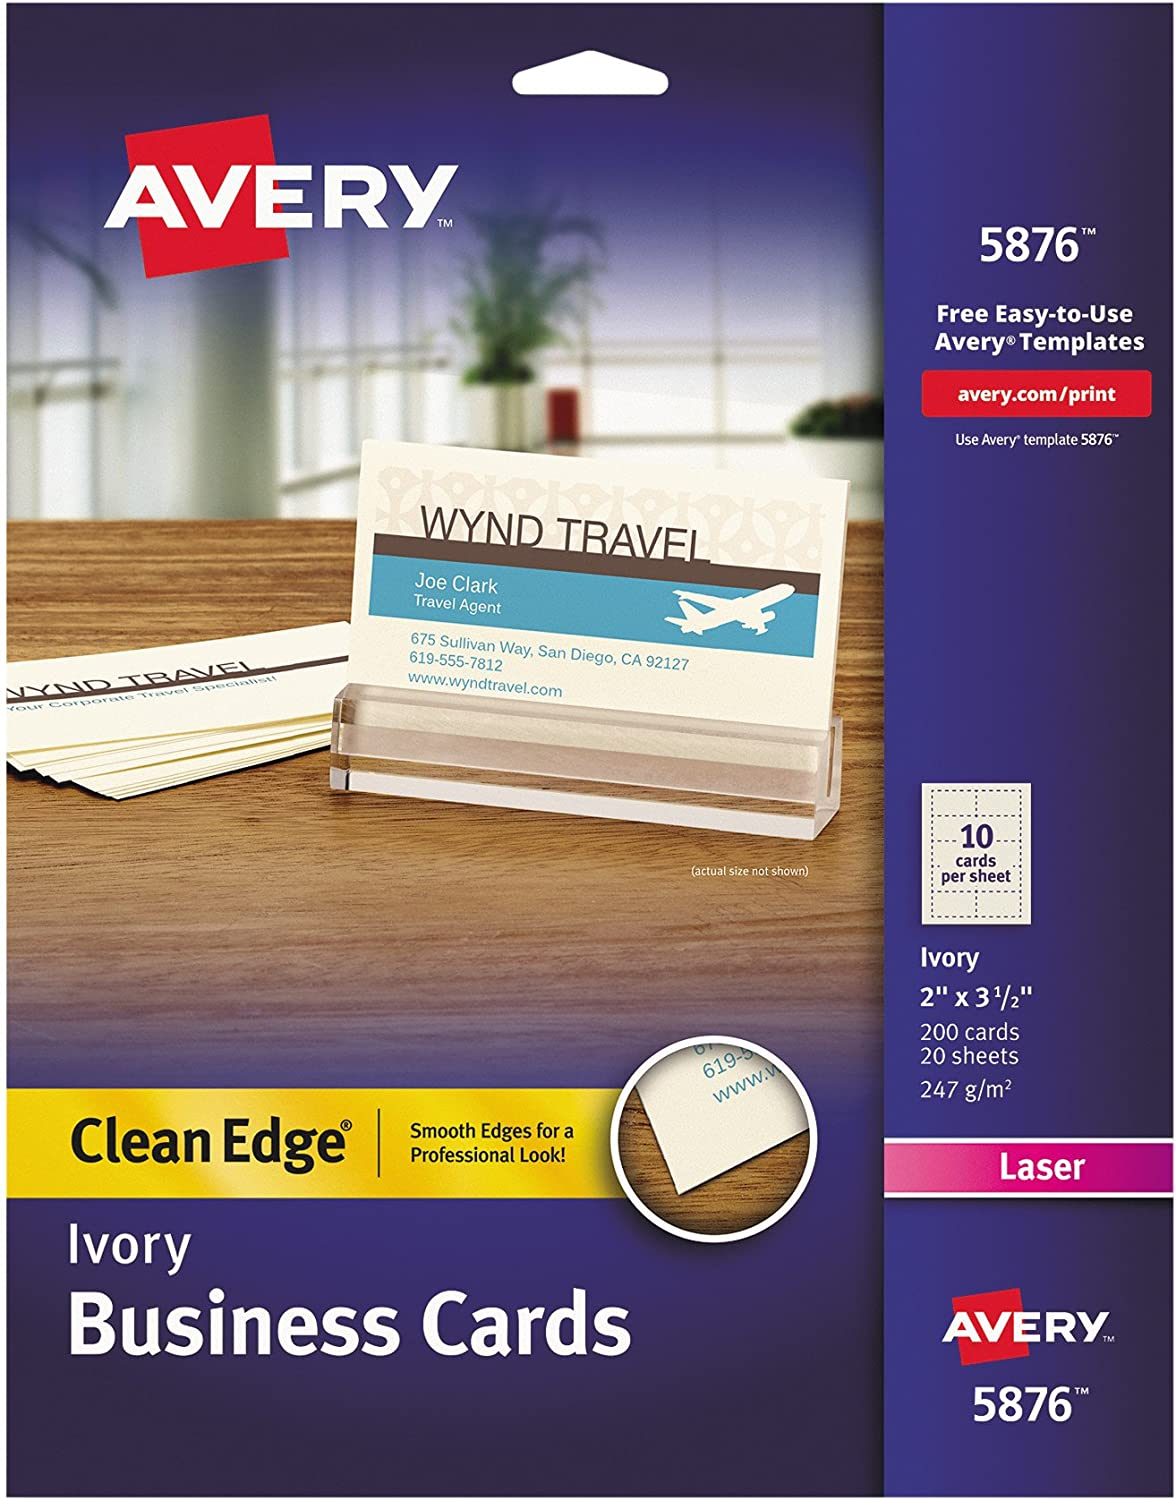 Amazon Com Avery 5876 Two Side Printable Clean Edge Business Cards For Laser Printers Ivory Pack Of 200 Business Card Stock Office Products